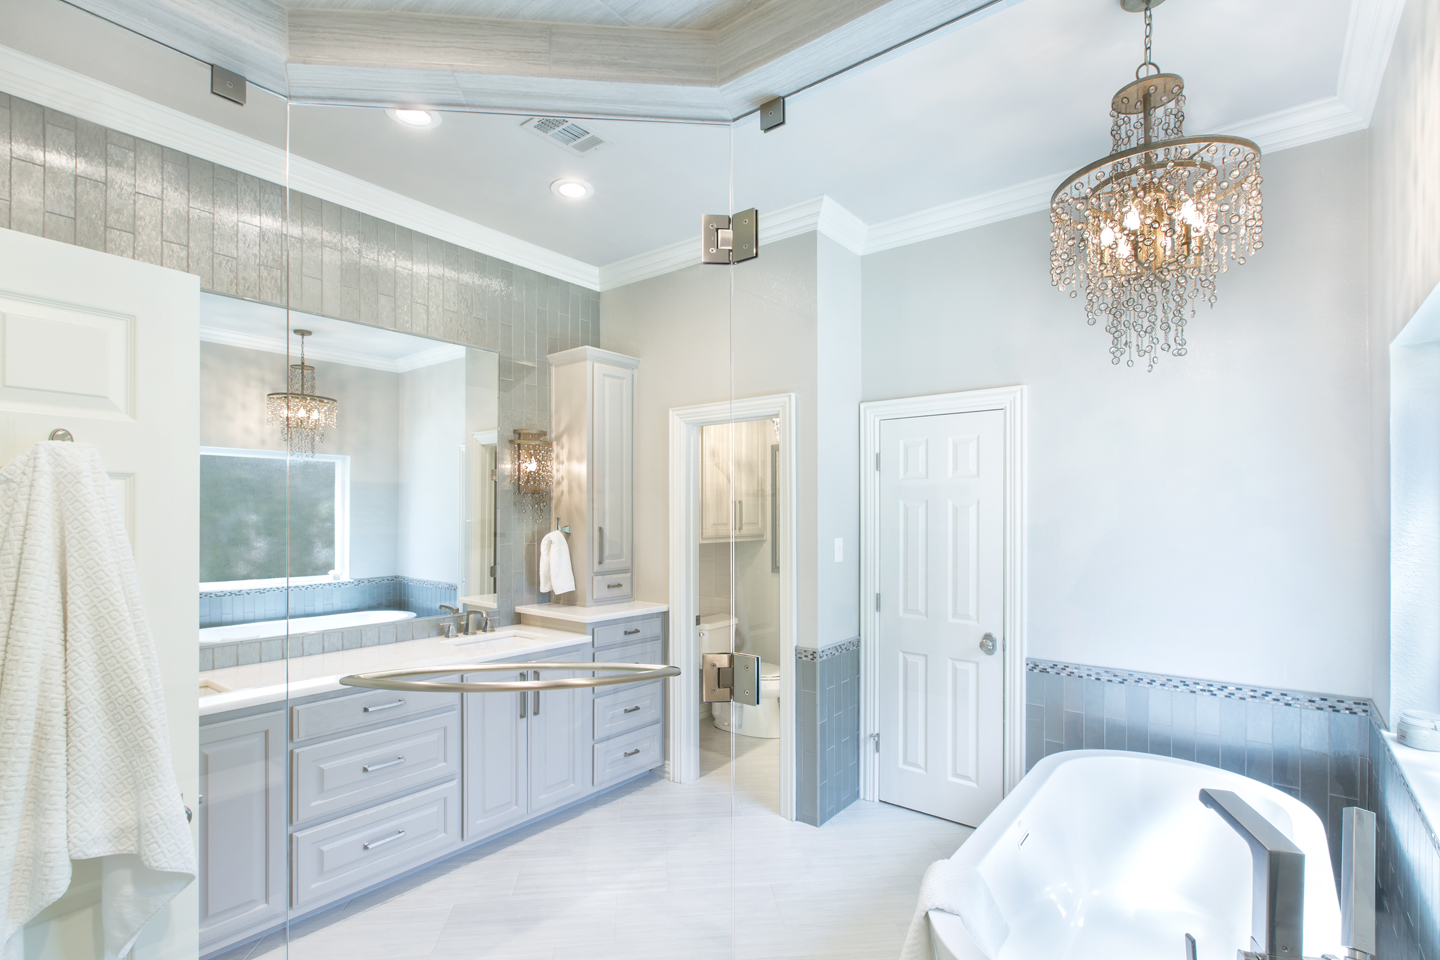 Our Recent Bathroom Project Involved Renovating A Large Master Bathroom In  An Upper End Arlington, Texas Home. The Existing Bathroom Was Quality And  ...